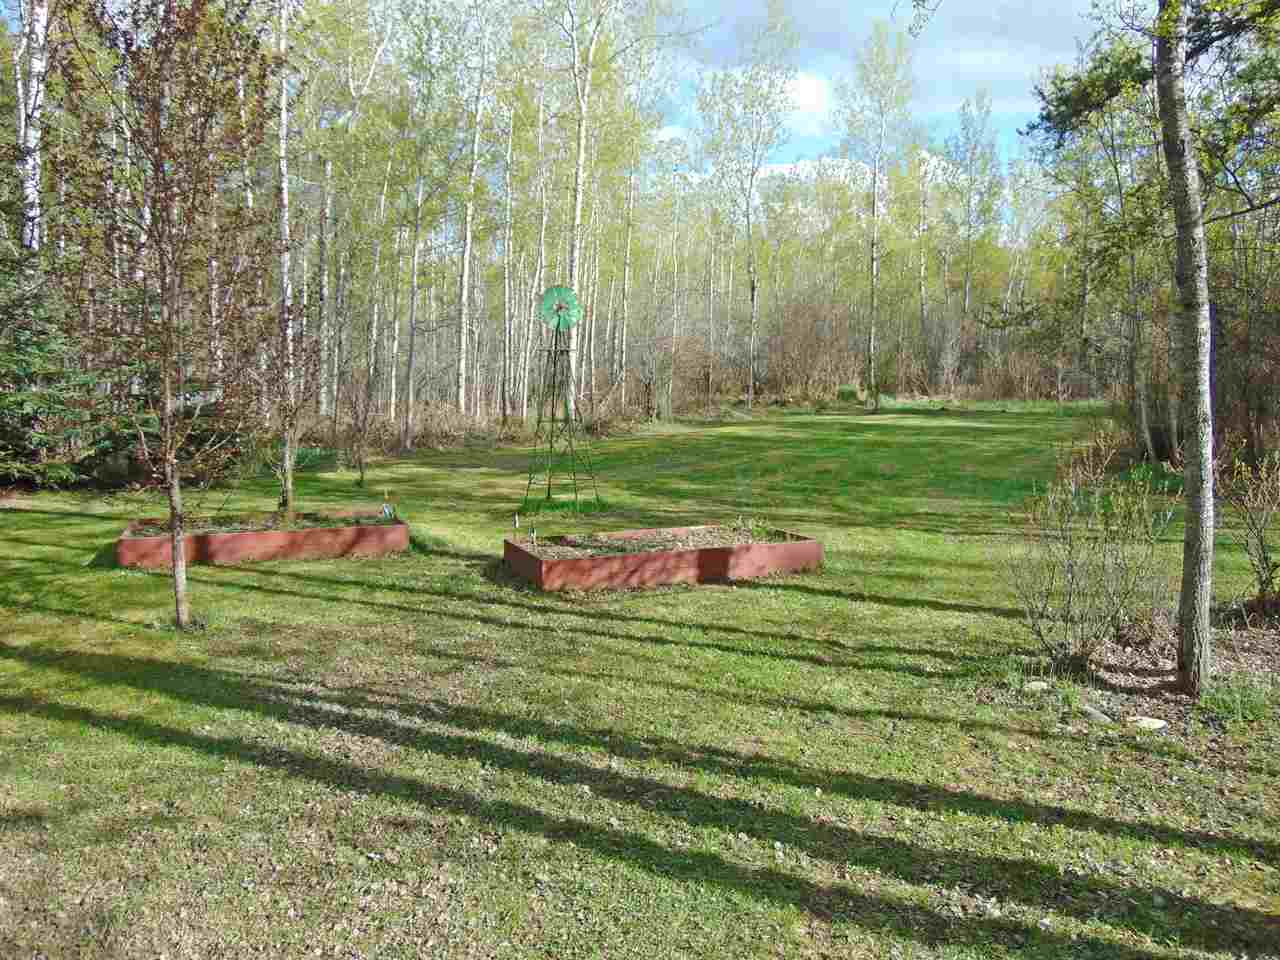 Photo 26: 67 59419 Rge Rd 240: Rural Westlock County Manufactured Home for sale : MLS(r) # E4064786